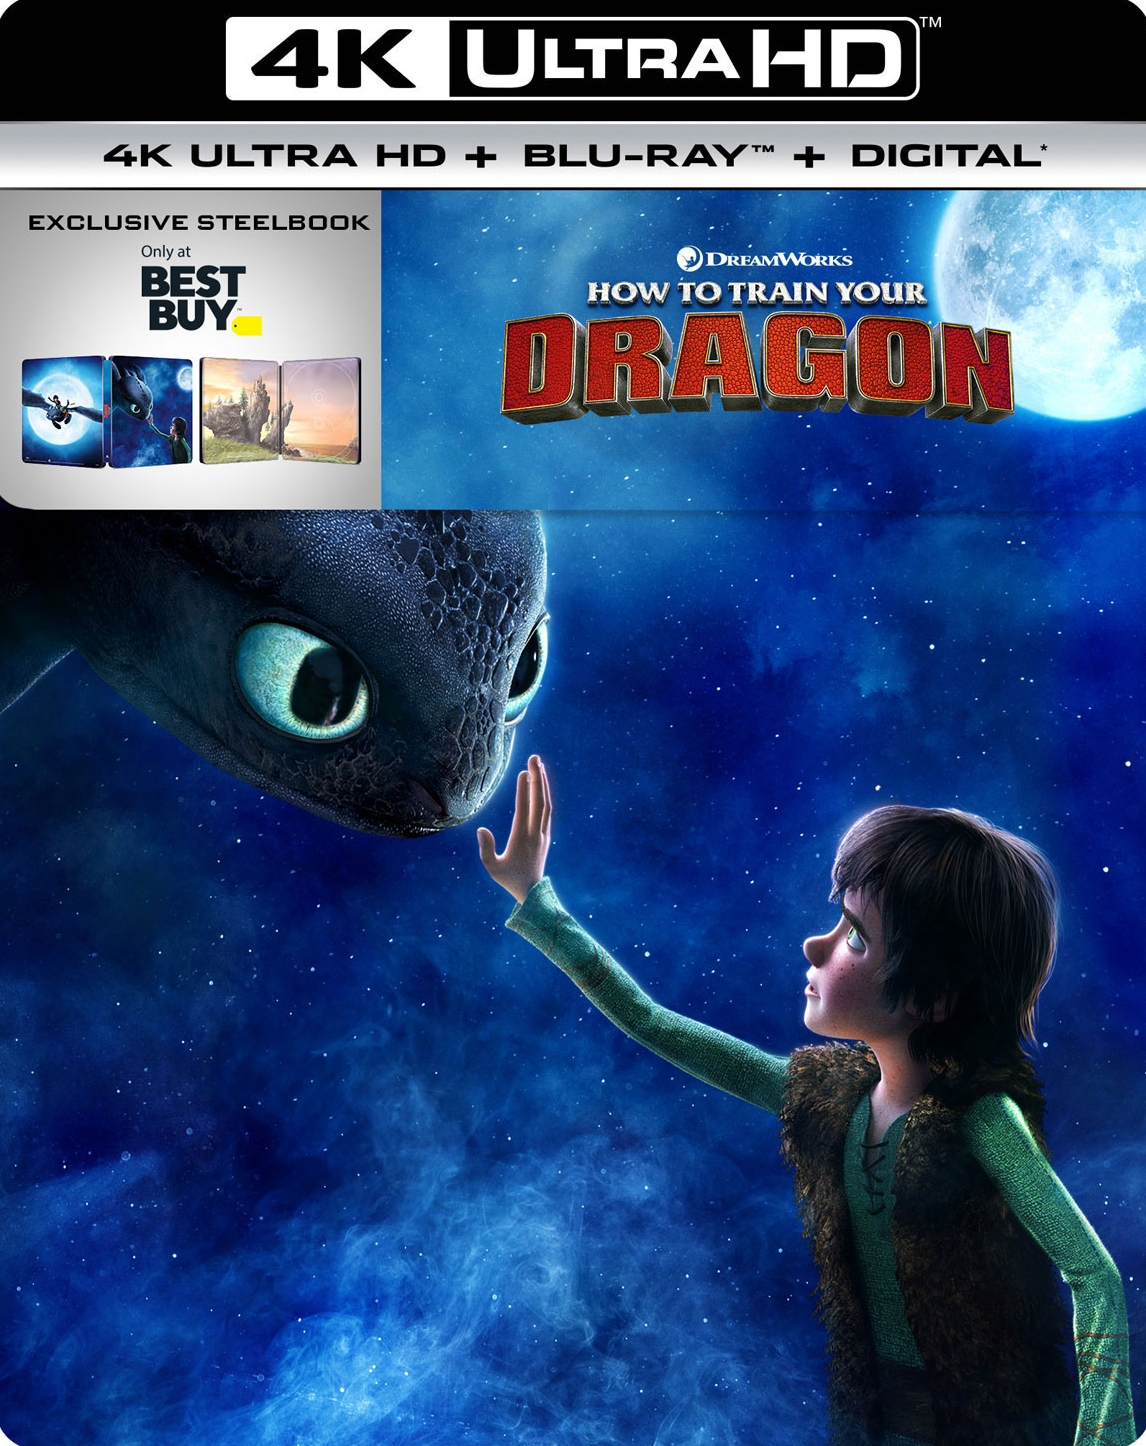 How to Train Your Dragon UHD SteelBook